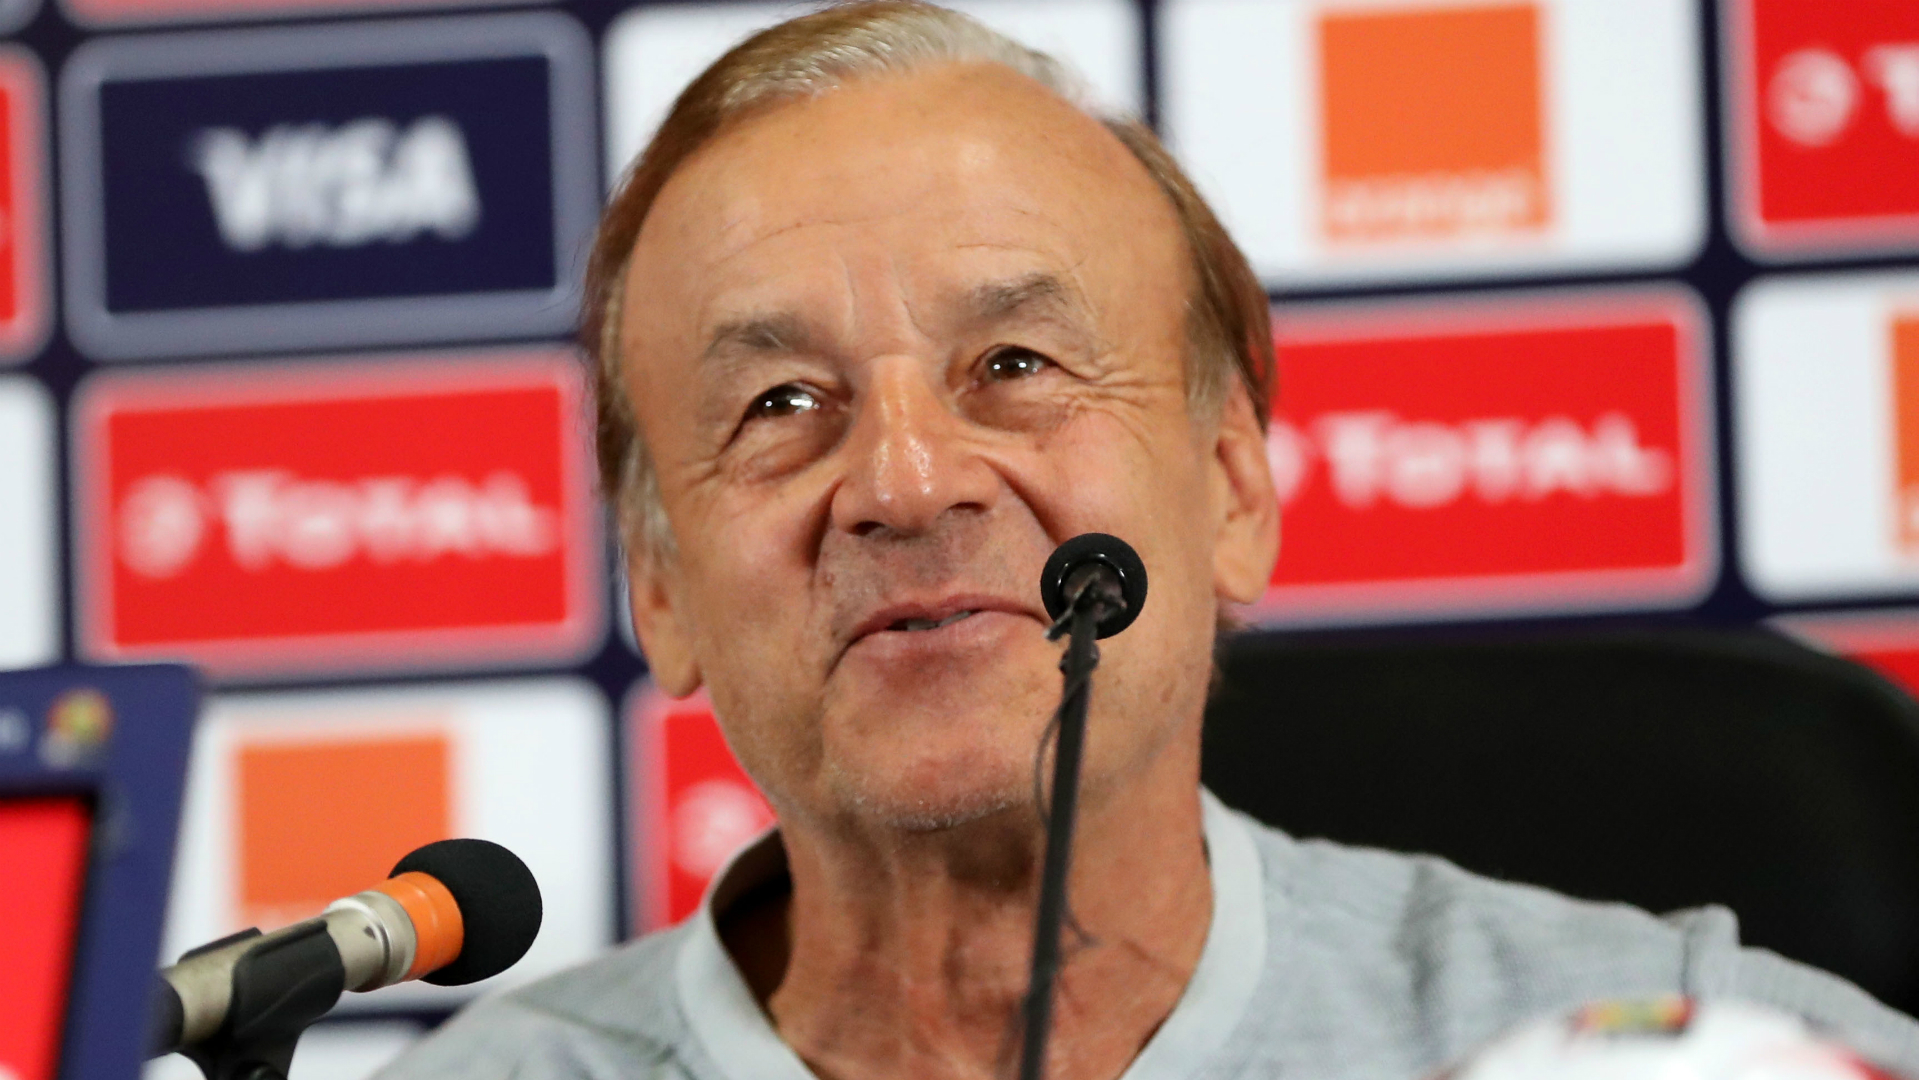 'Nigeria have tricky opponents' – Rohr reacts to World Cup qualifying draw